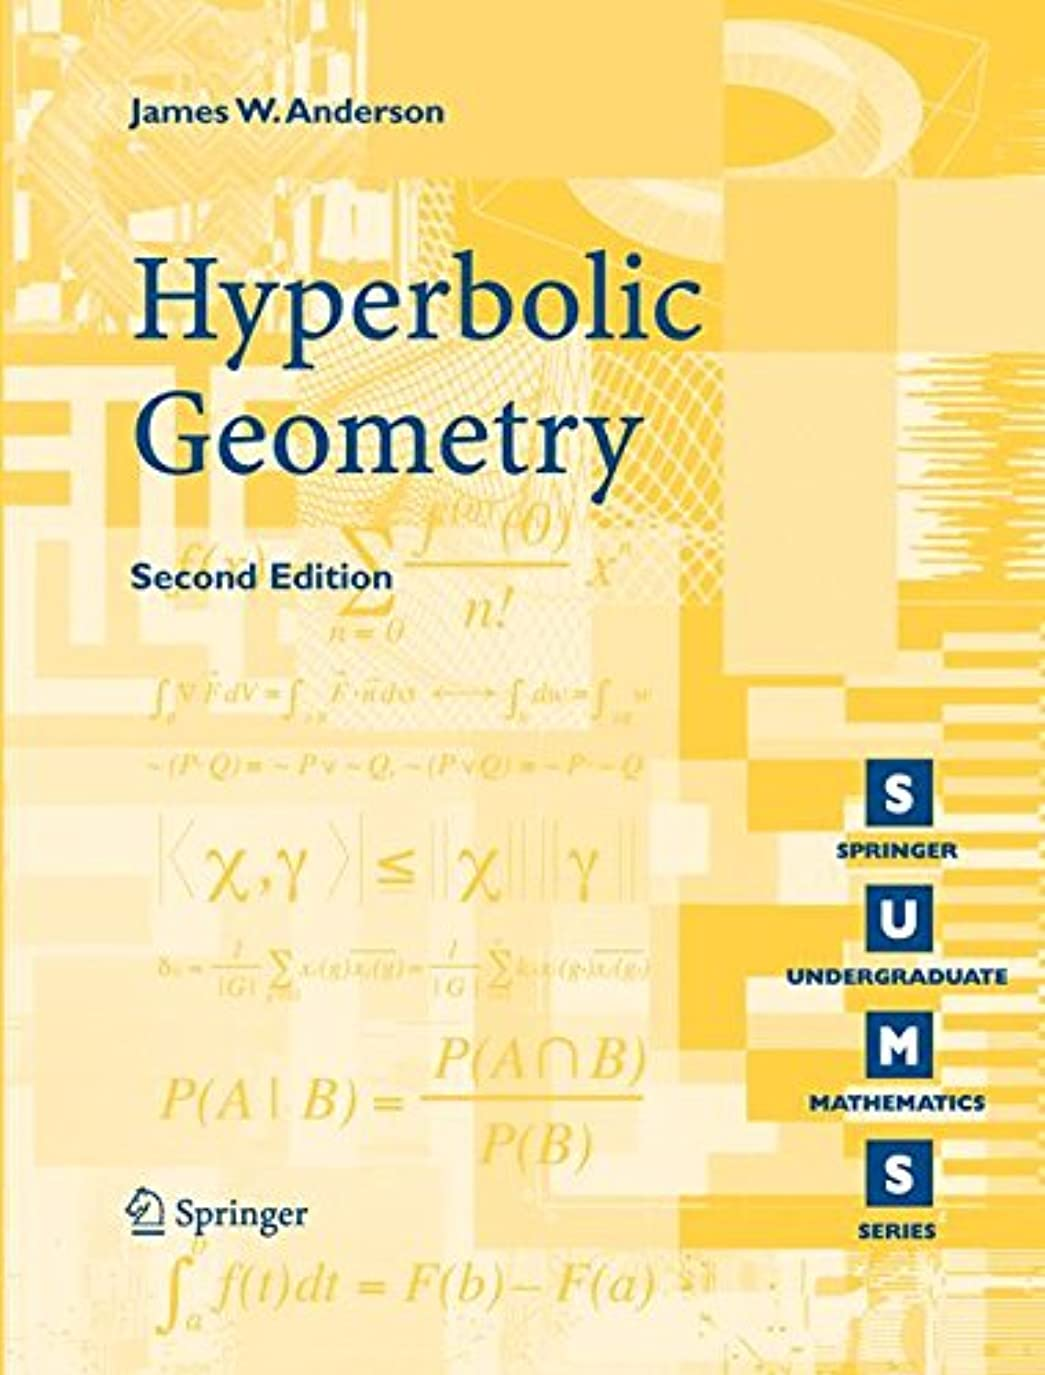 殺す元に戻す交差点Hyperbolic Geometry (Springer Undergraduate Mathematics Series)